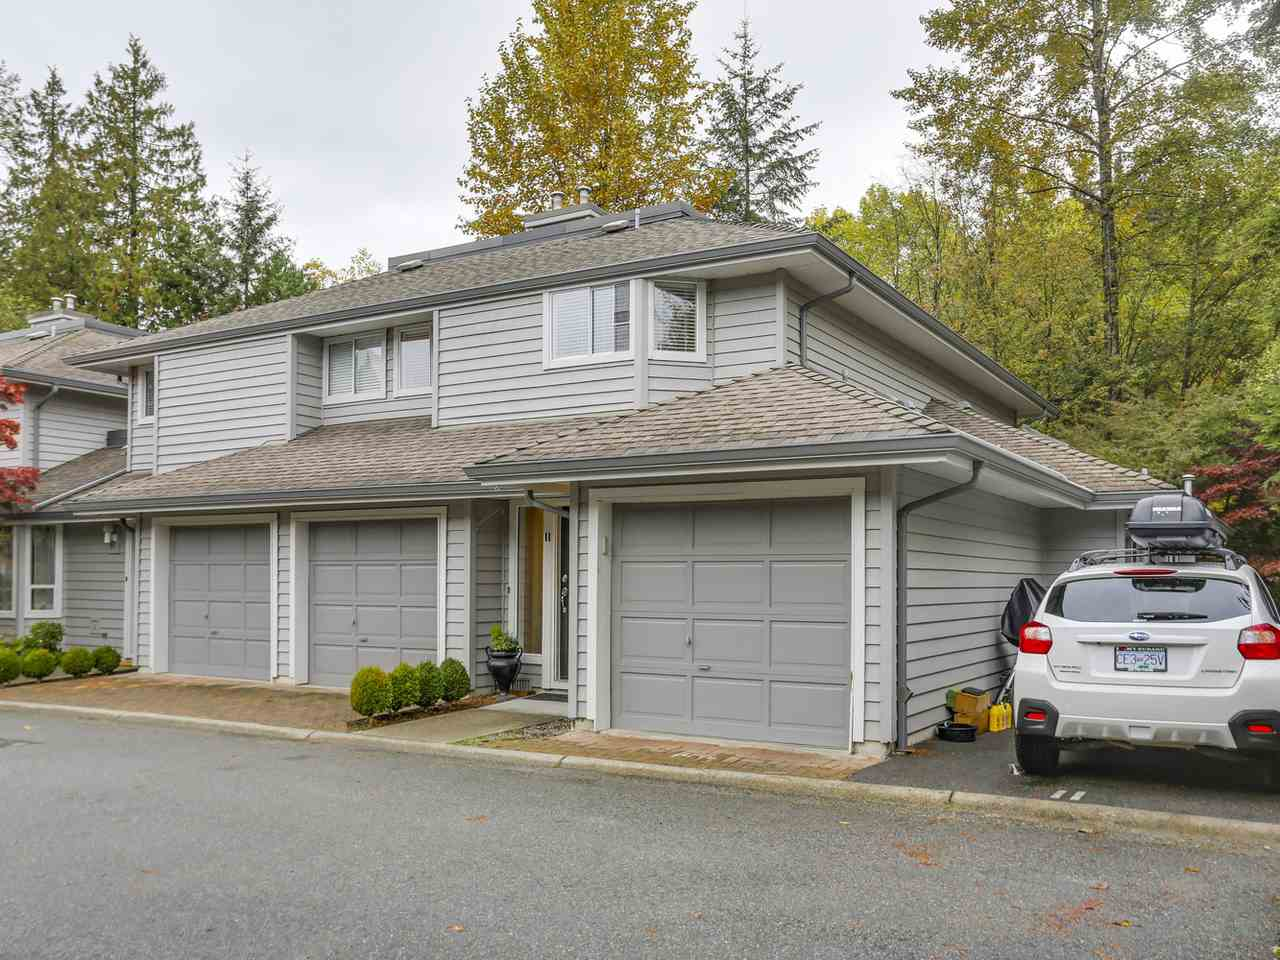 Main Photo: 11 3634 GARIBALDI DRIVE in North Vancouver: Roche Point Townhouse for sale : MLS® # R2116082